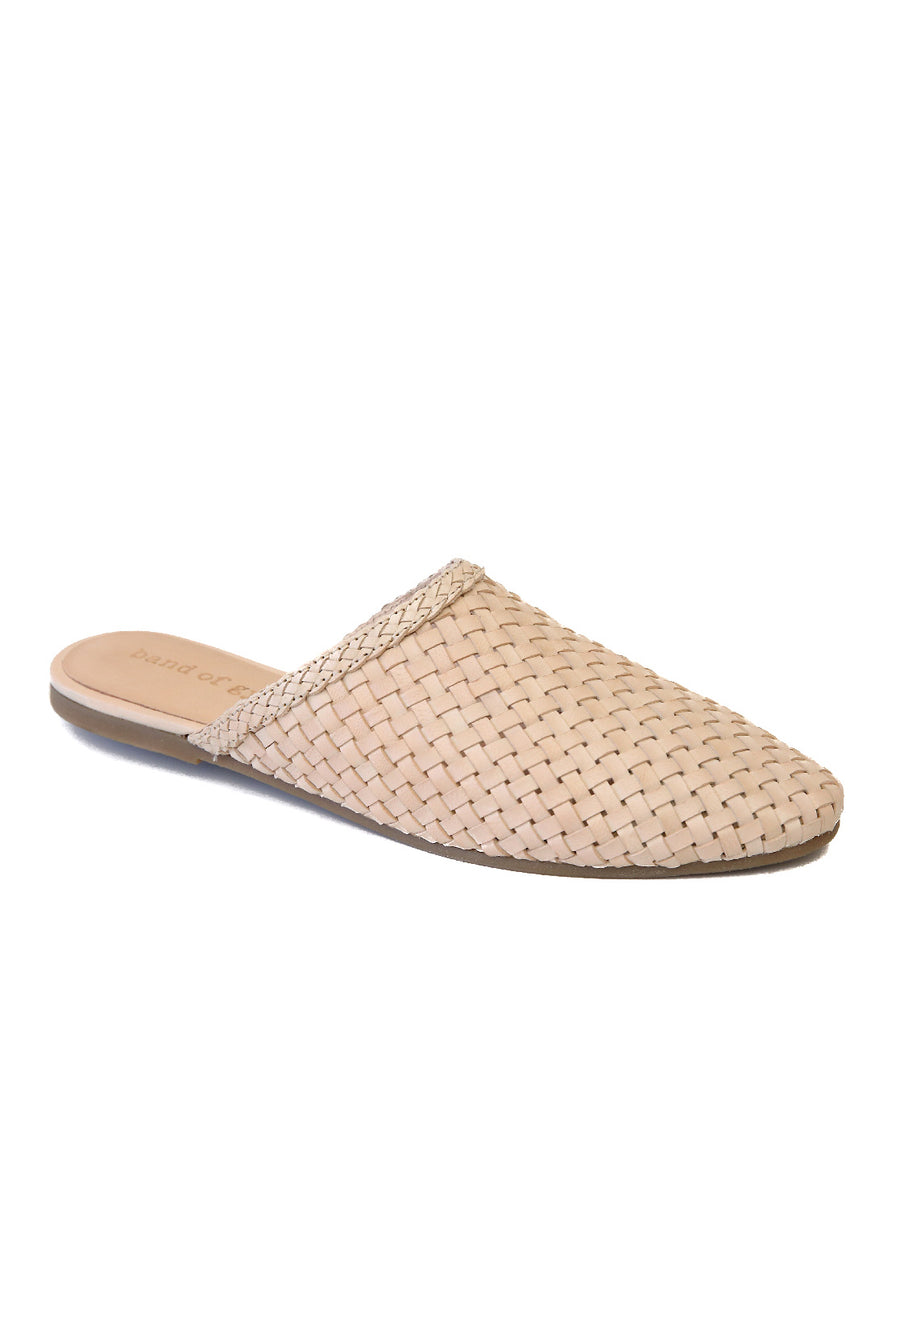 Litha Natural Leather Woven Mule Master